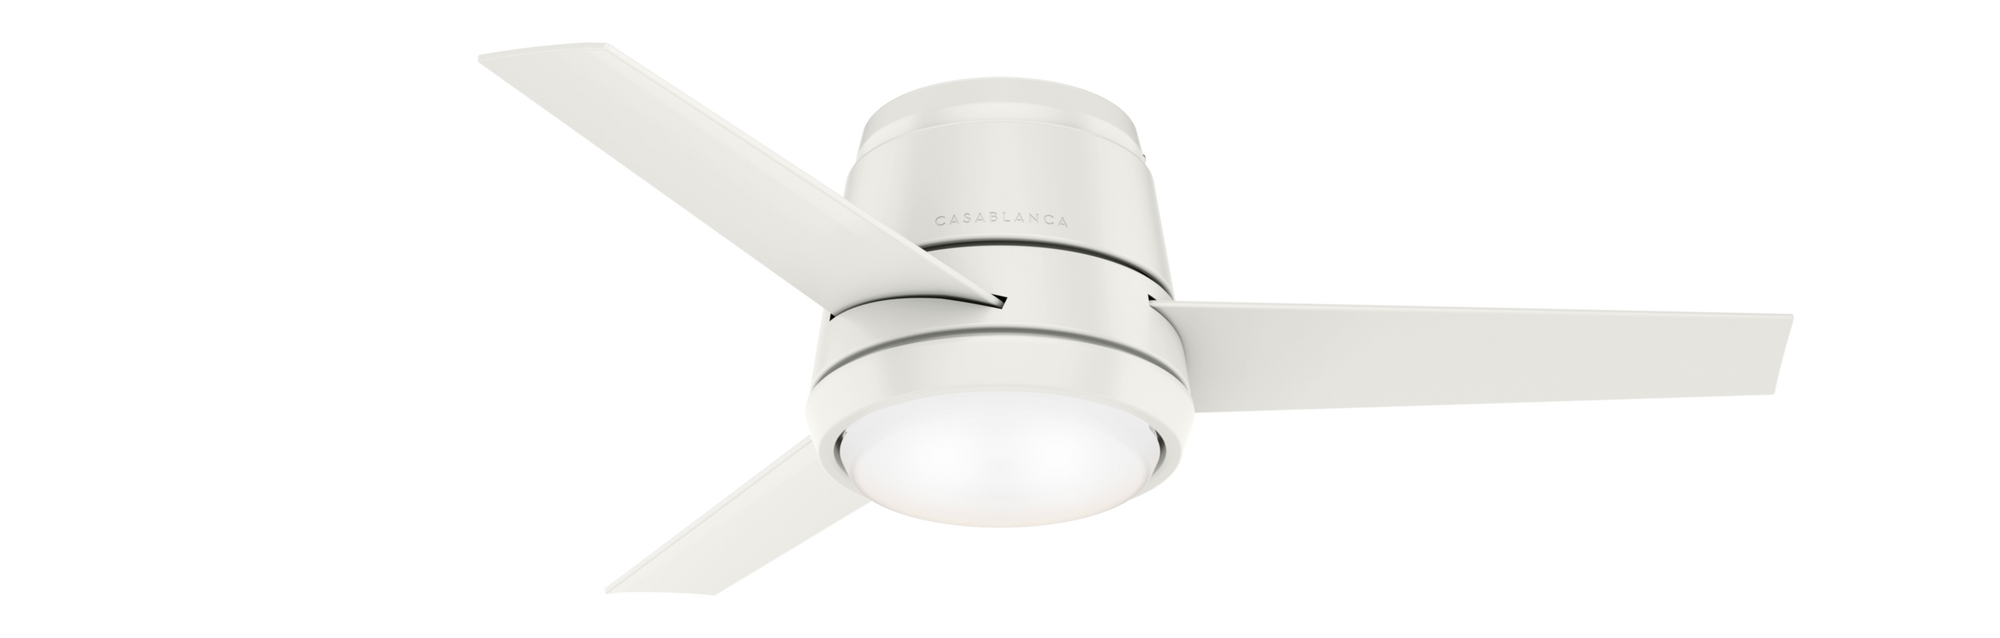 Casablanca Indoor Low Profile Commodus Ceiling Fan with LED LightJD inch, White, 59568